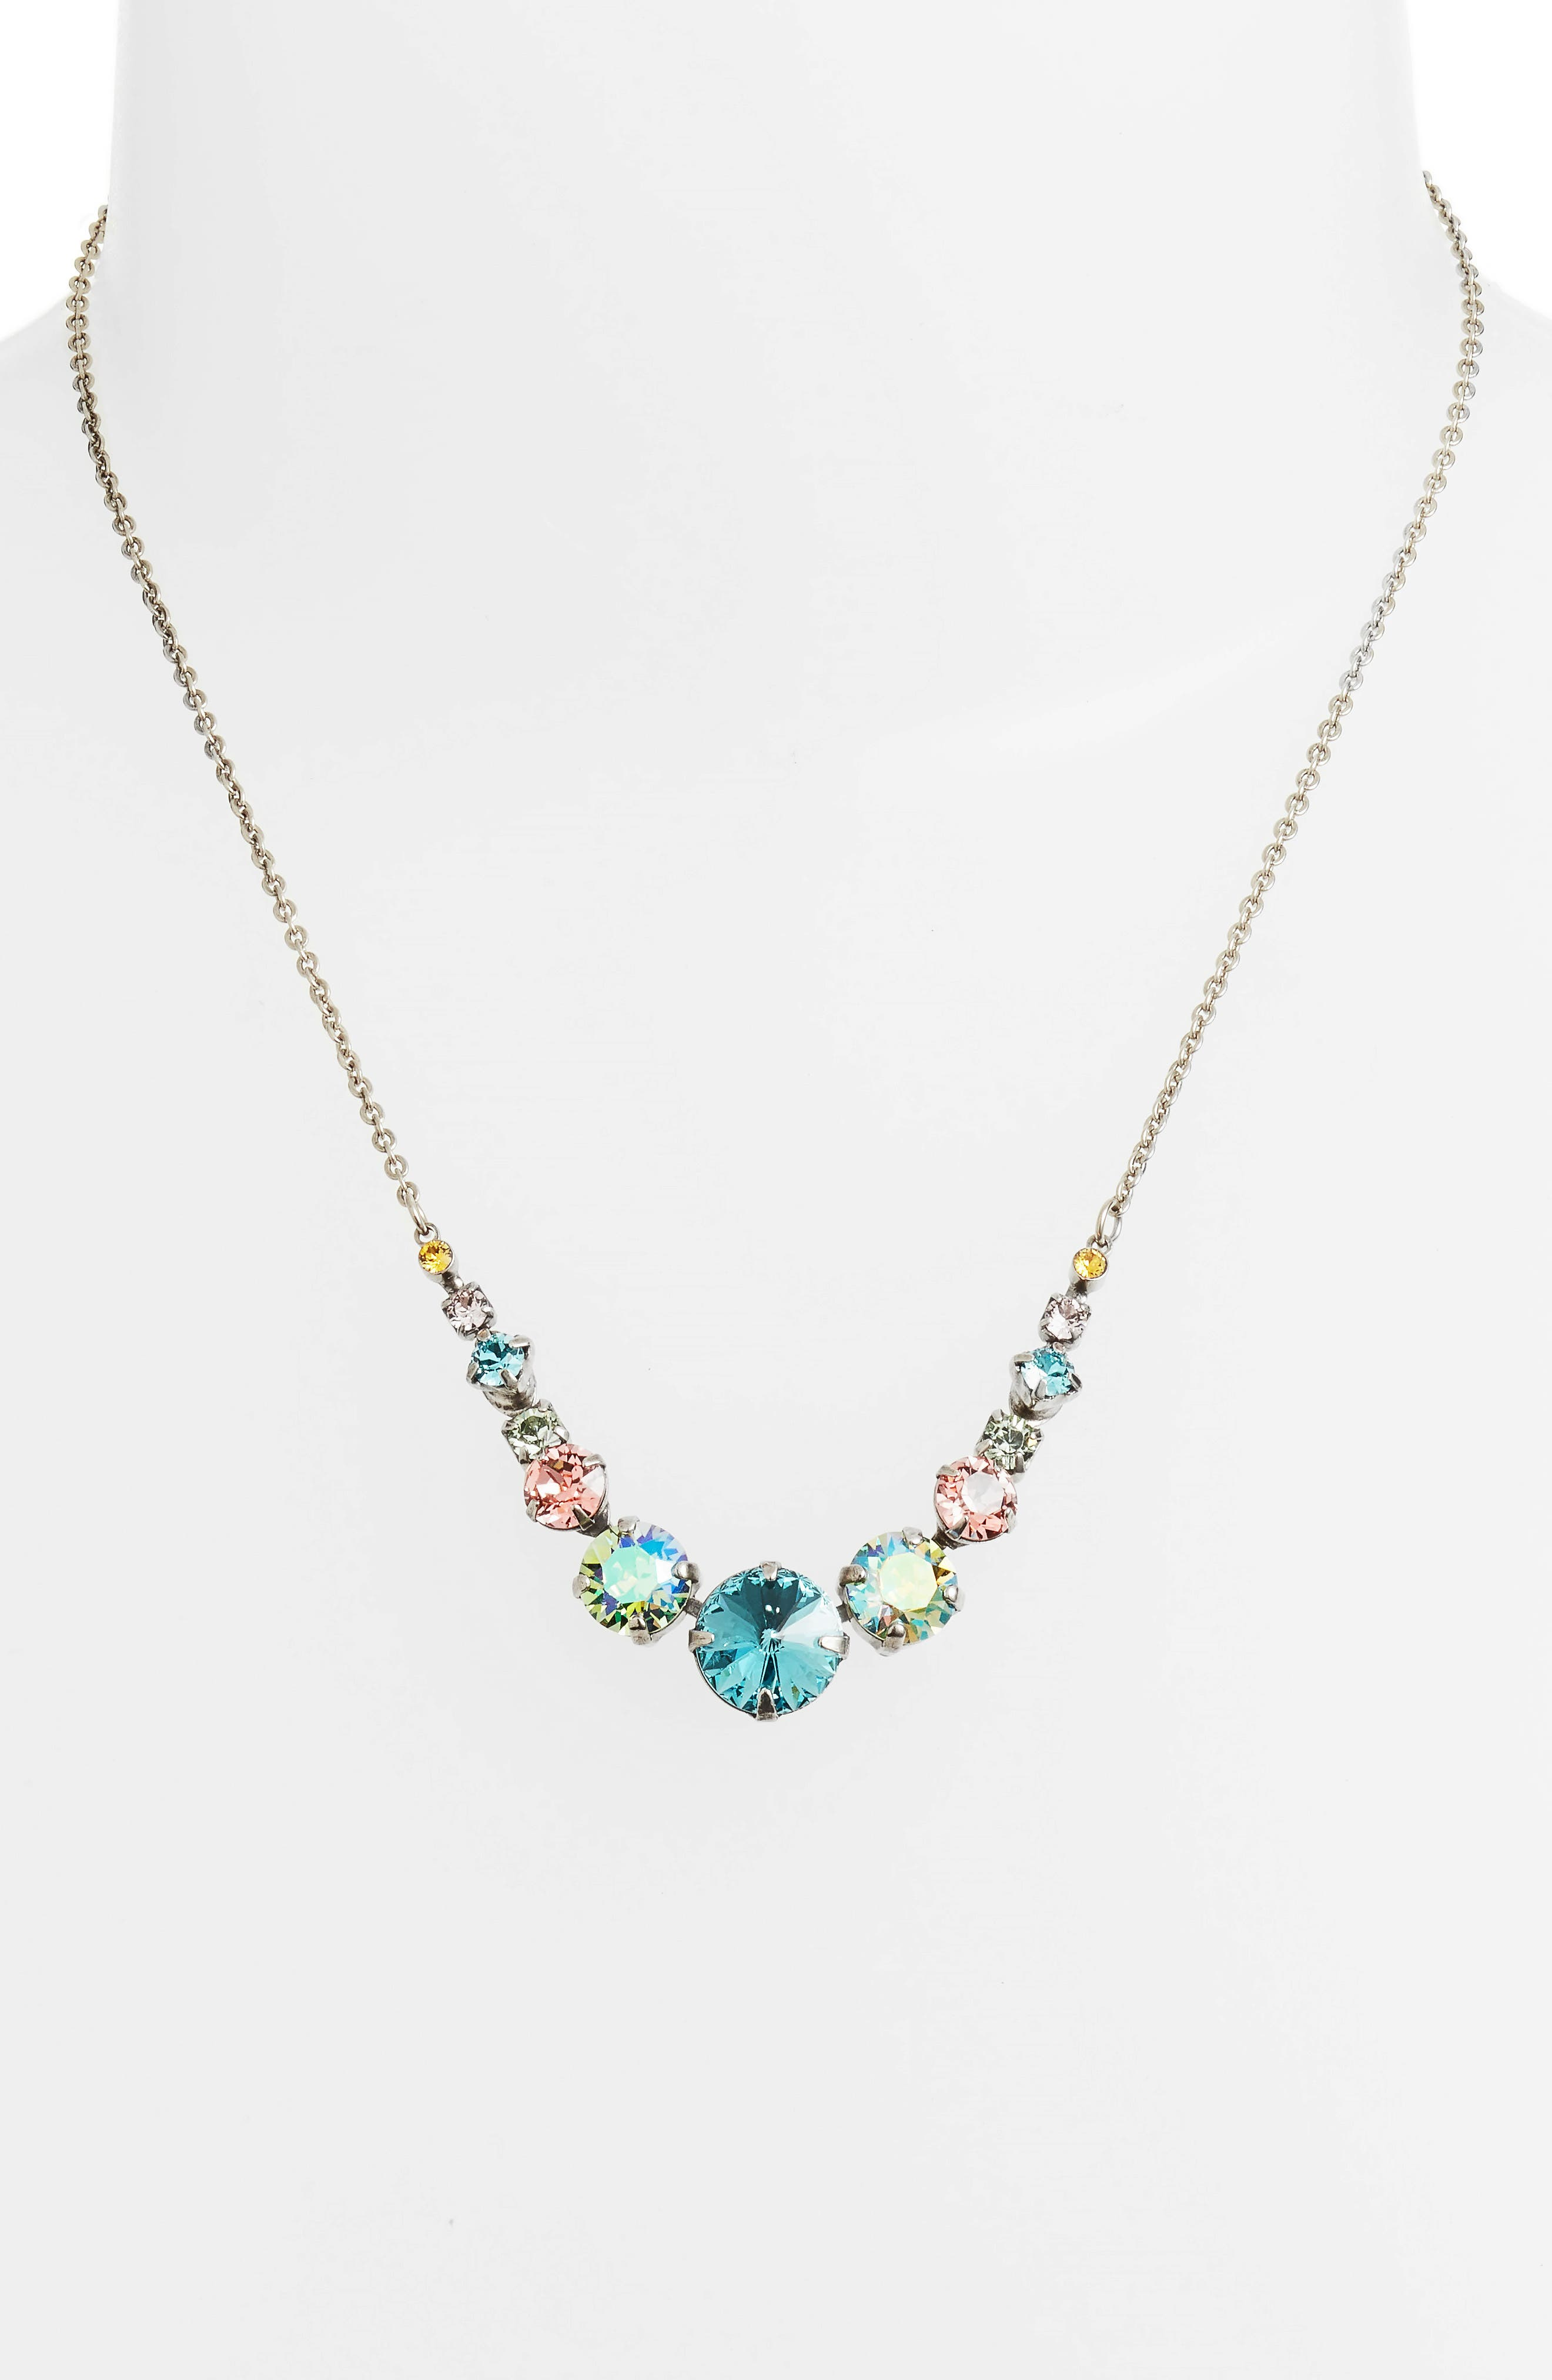 Delicate Round Crystal Necklace,                             Alternate thumbnail 2, color,                             AQUA/ PINK/ GREEN